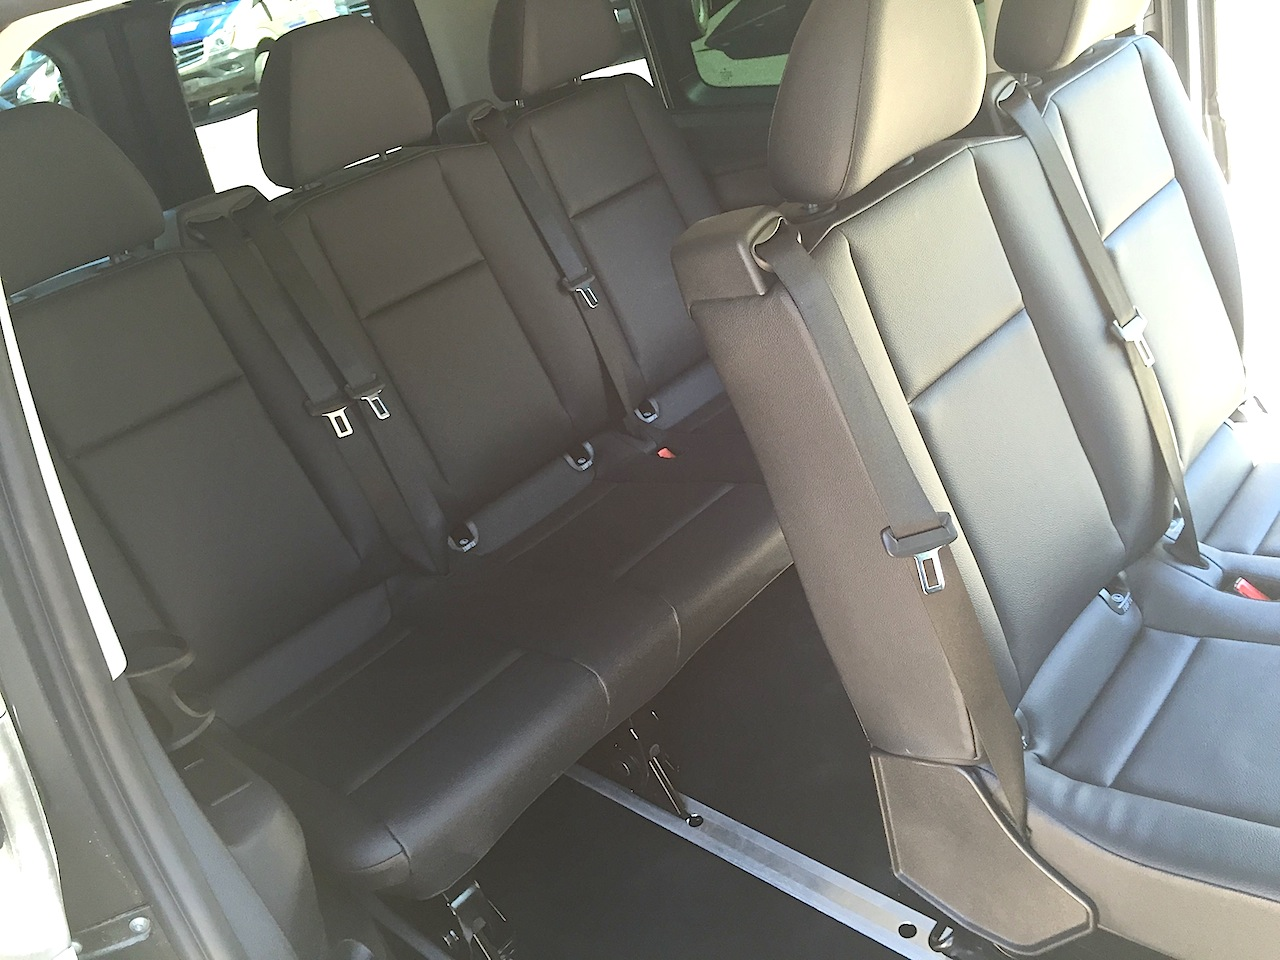 2016 Mercedes Metris Rear Seats The Fast Lane Truck